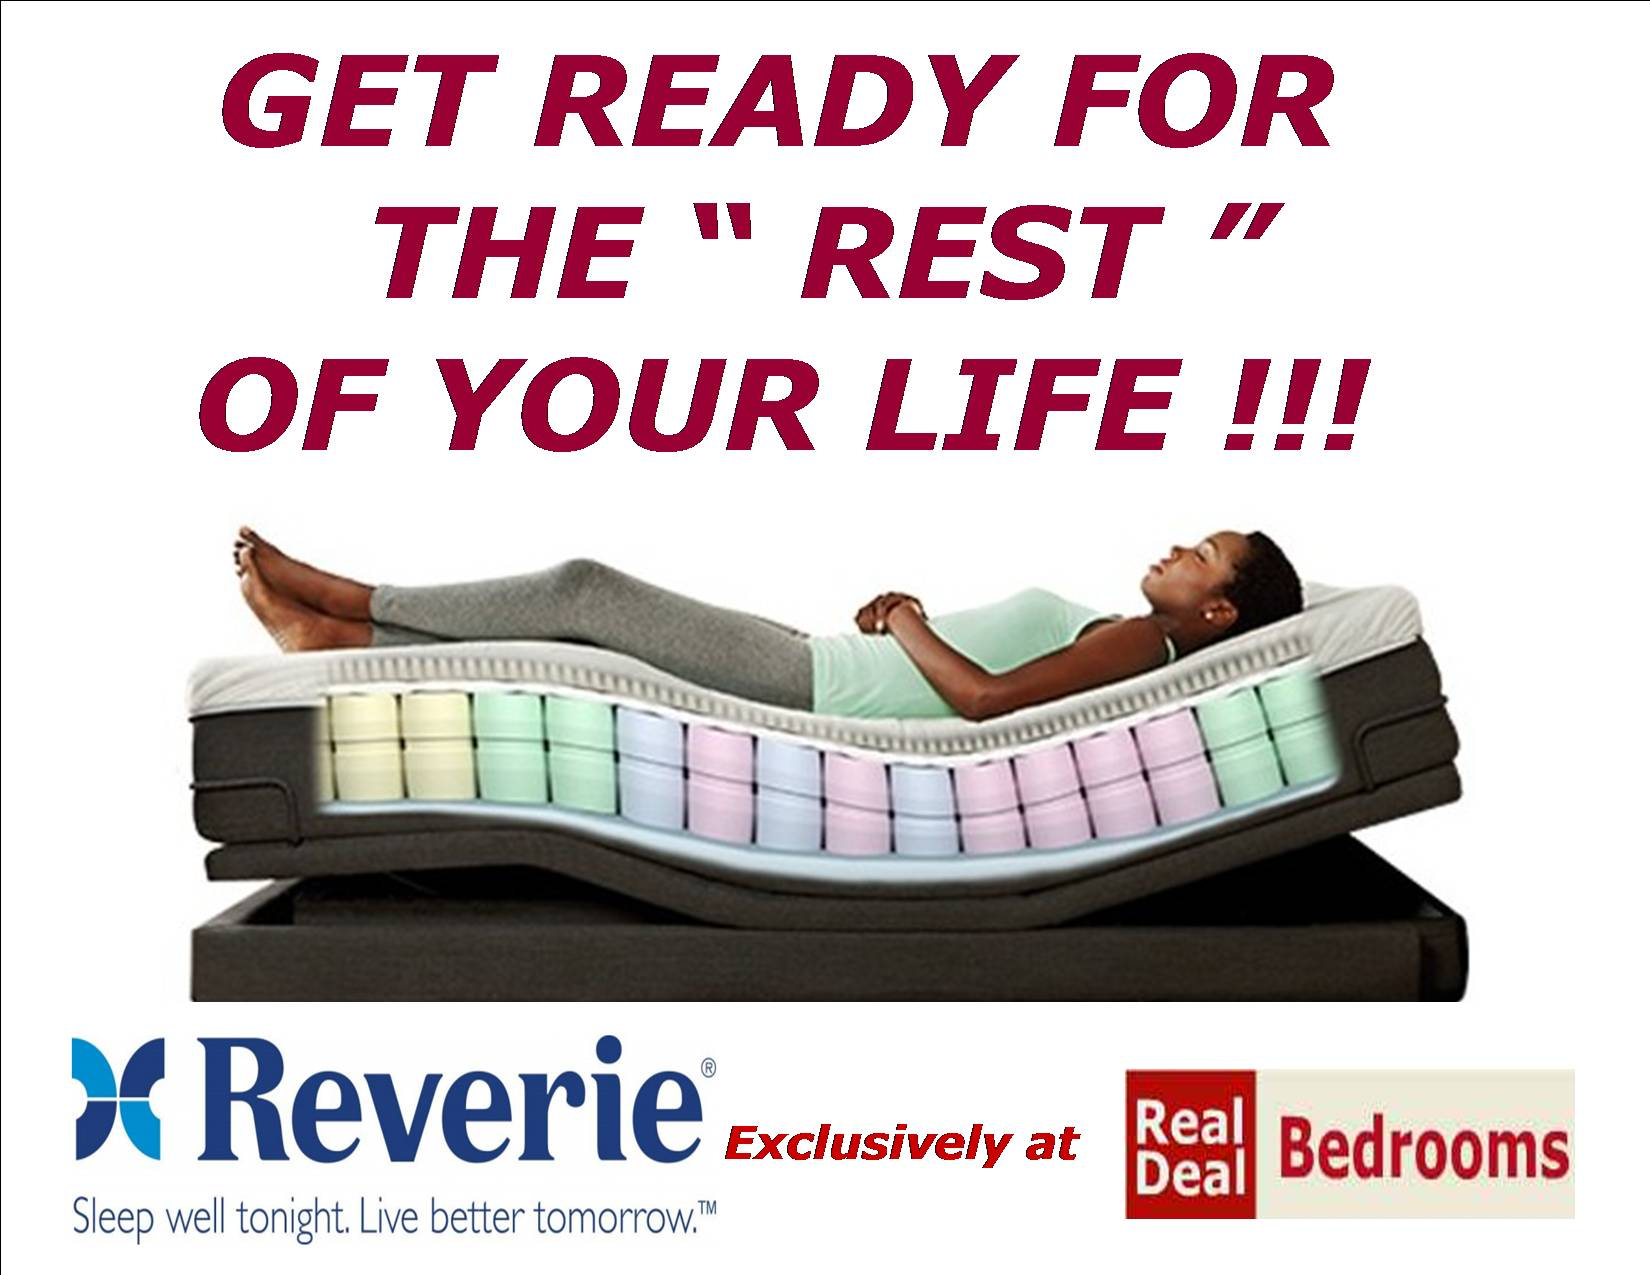 the soften spring smooth a premium high label quality merza offers body mattress our that sleep through banner with base night and for your mattresses variety of comfort firm total